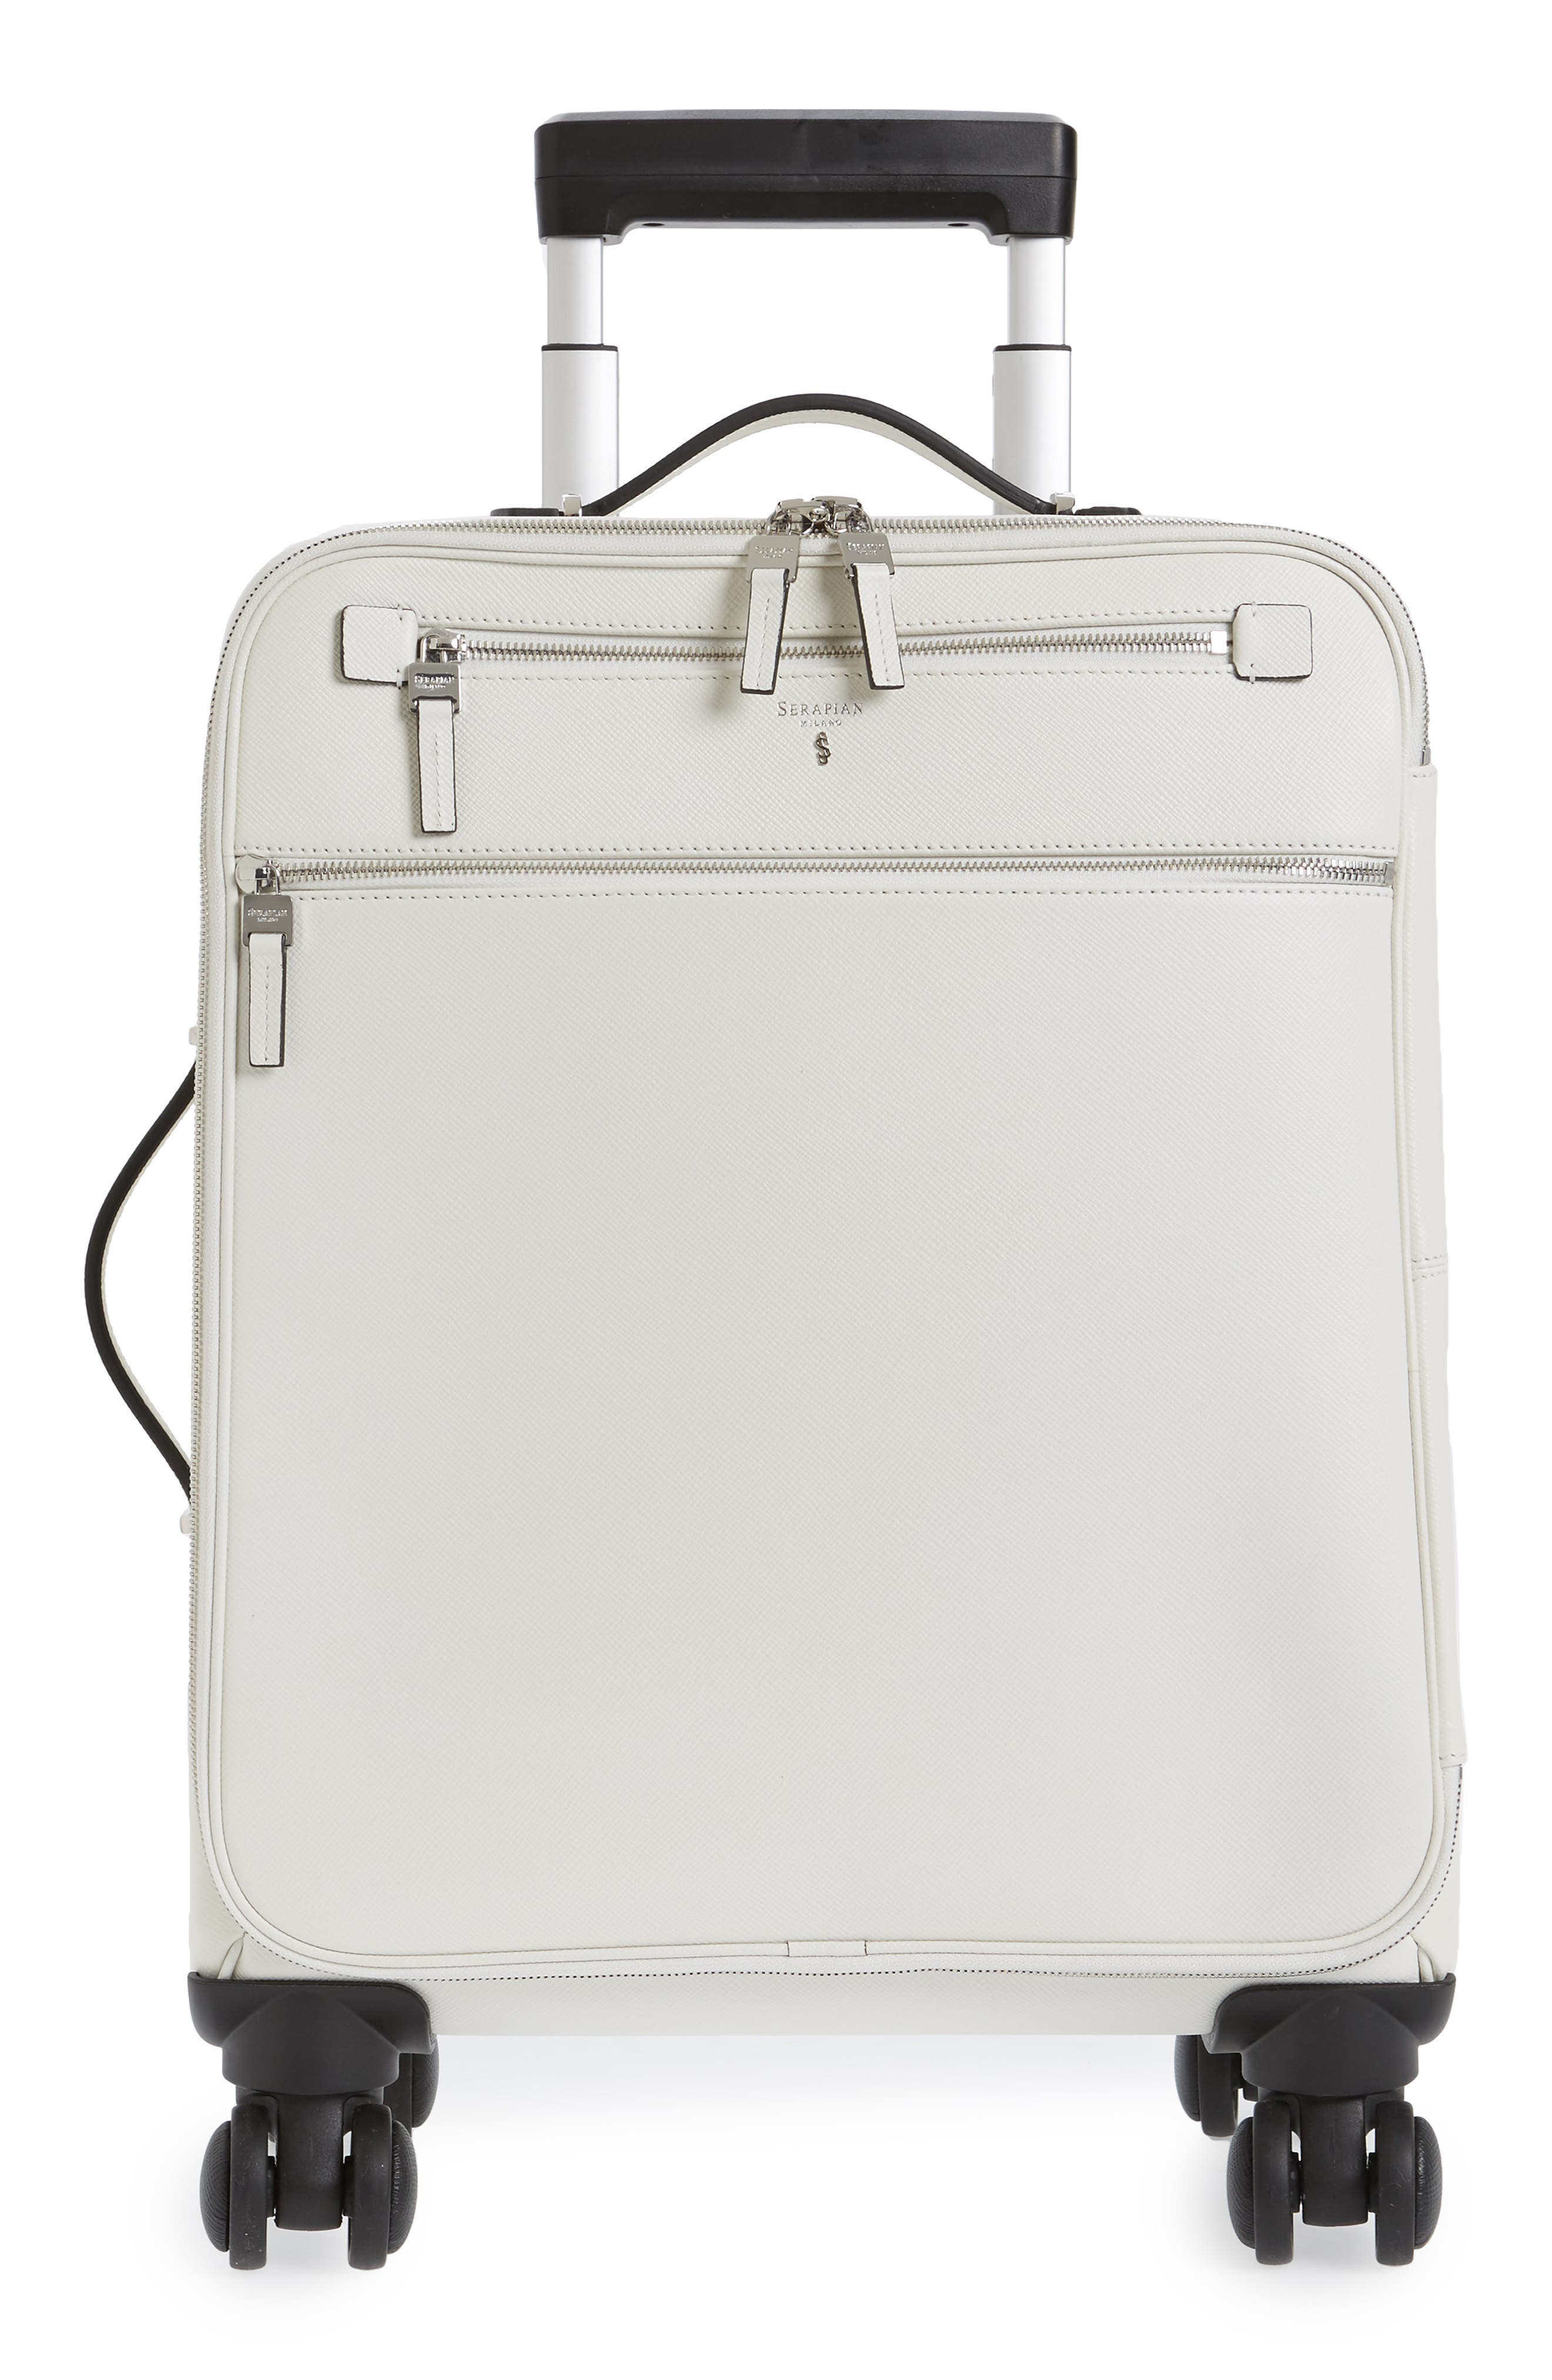 Trolley Spinner Wheeled Carry-On Suitcase,                             Main thumbnail 1, color,